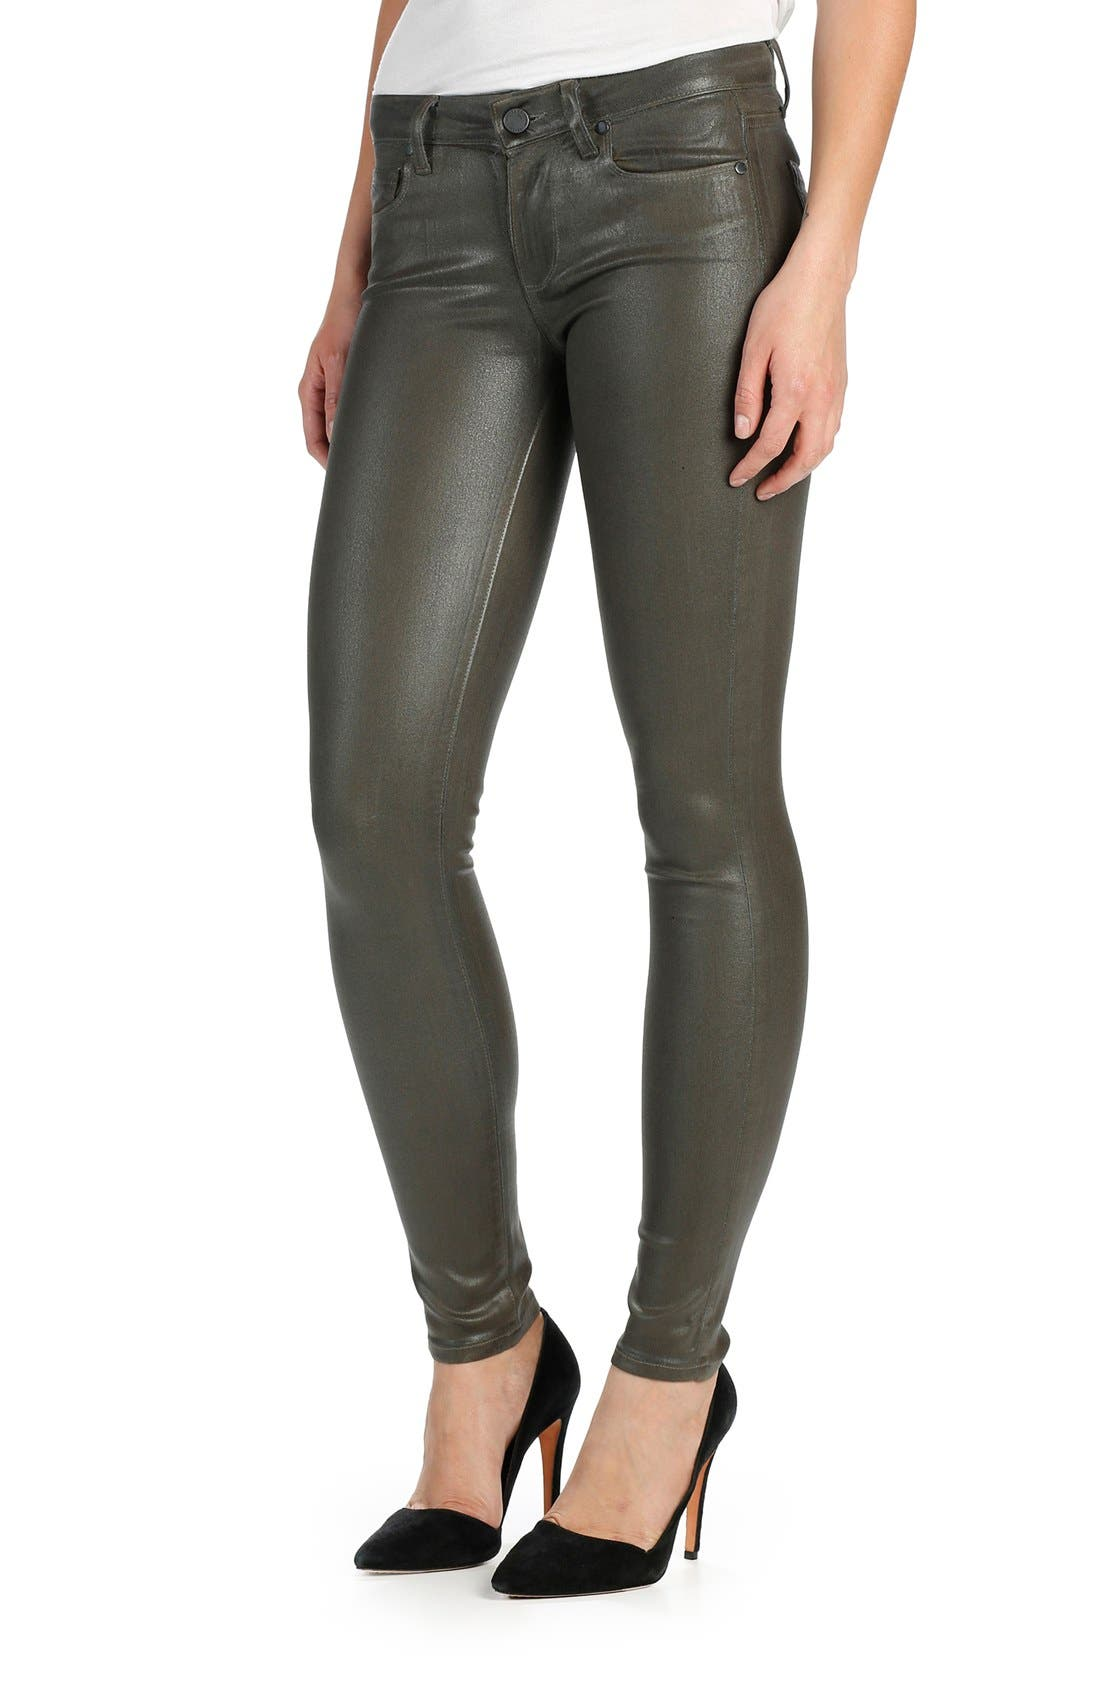 PAIGE Transcend Verdugo Coated Ultra Skinny Jeans